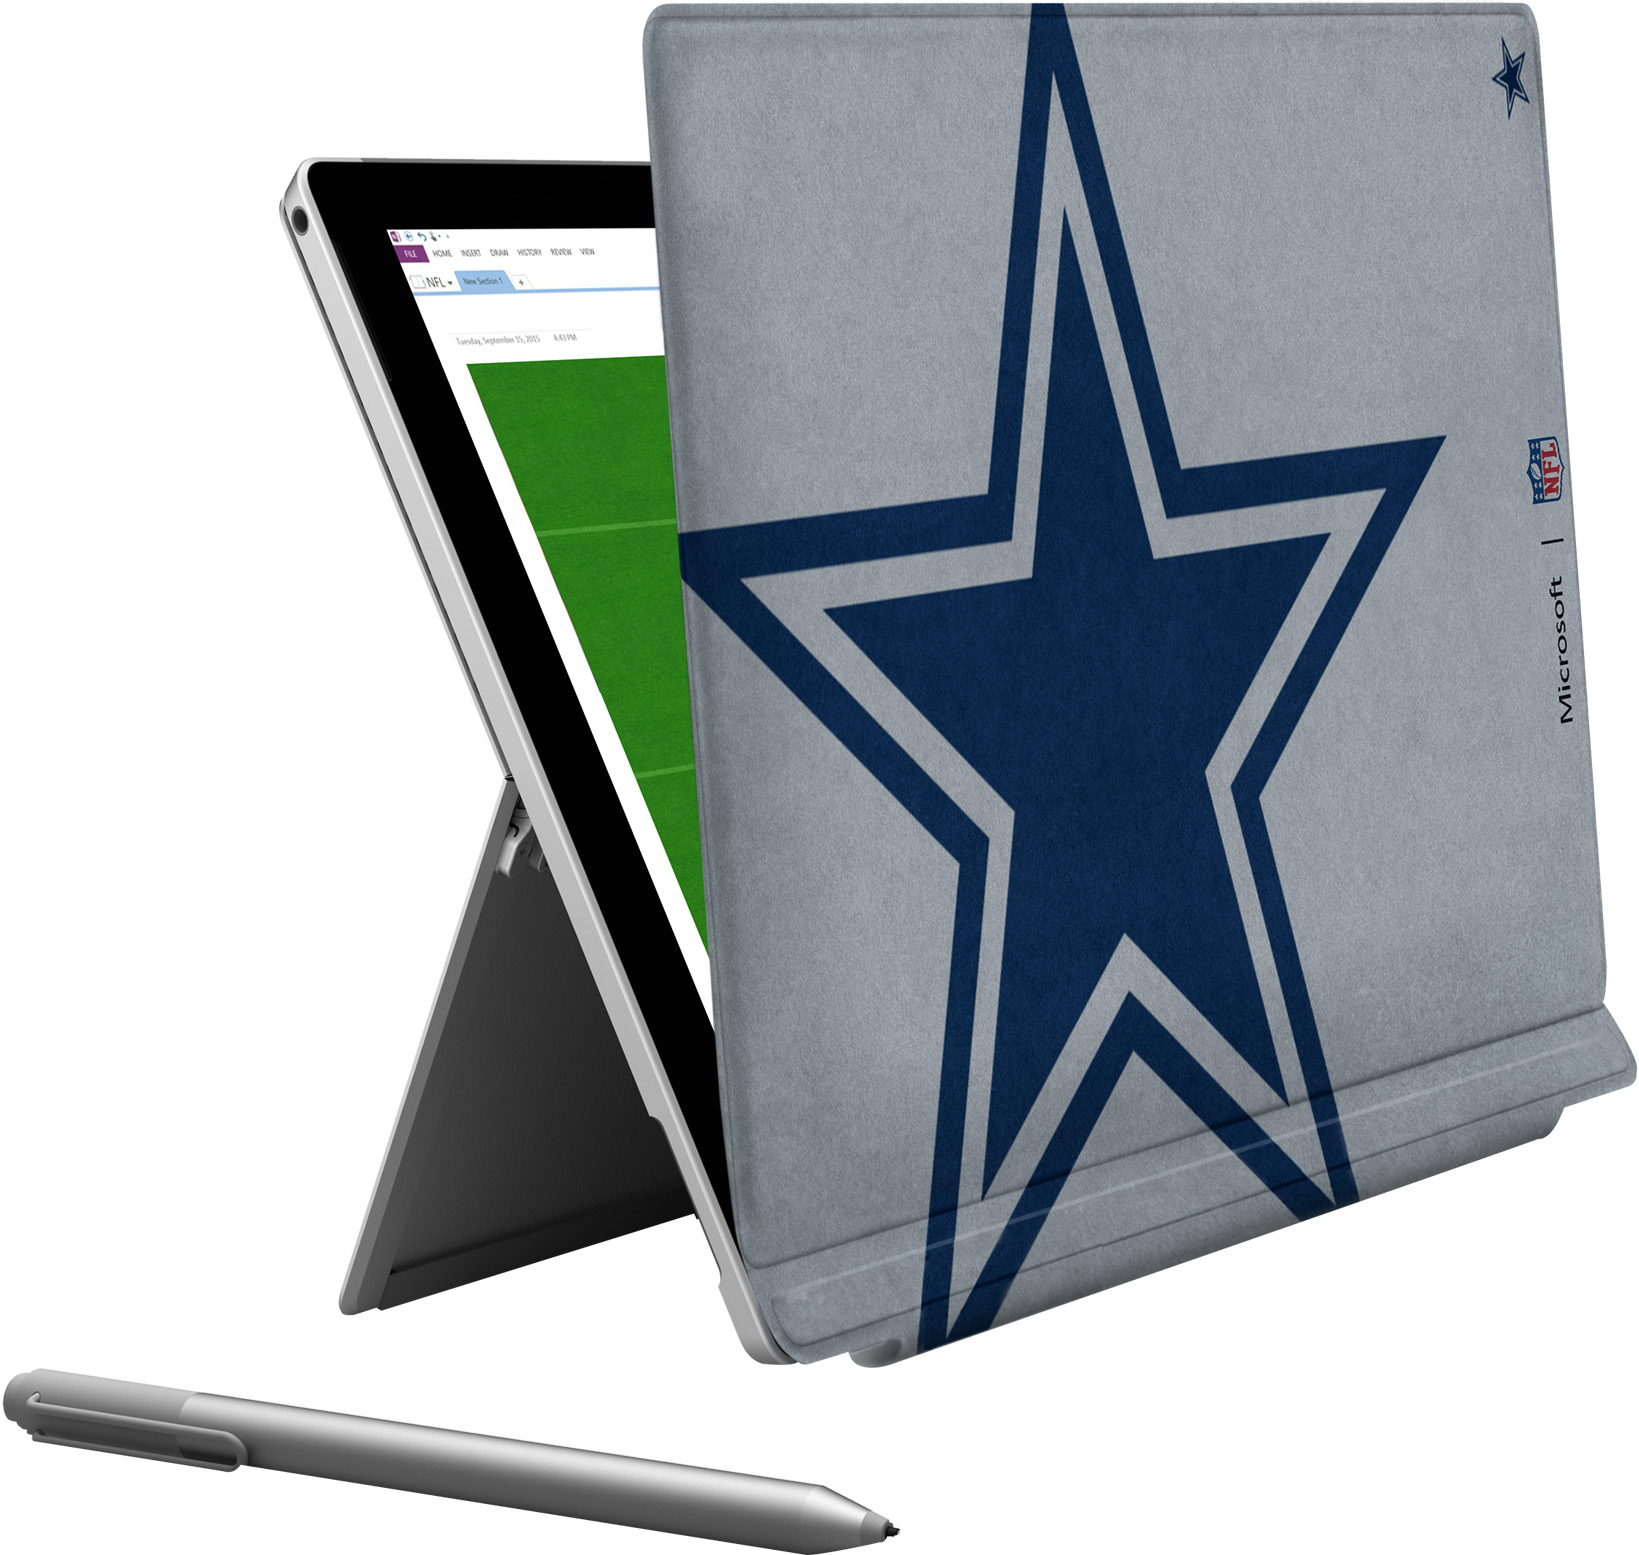 Microsoft Surface Pro 4 Dallas Cowboys Type Cover